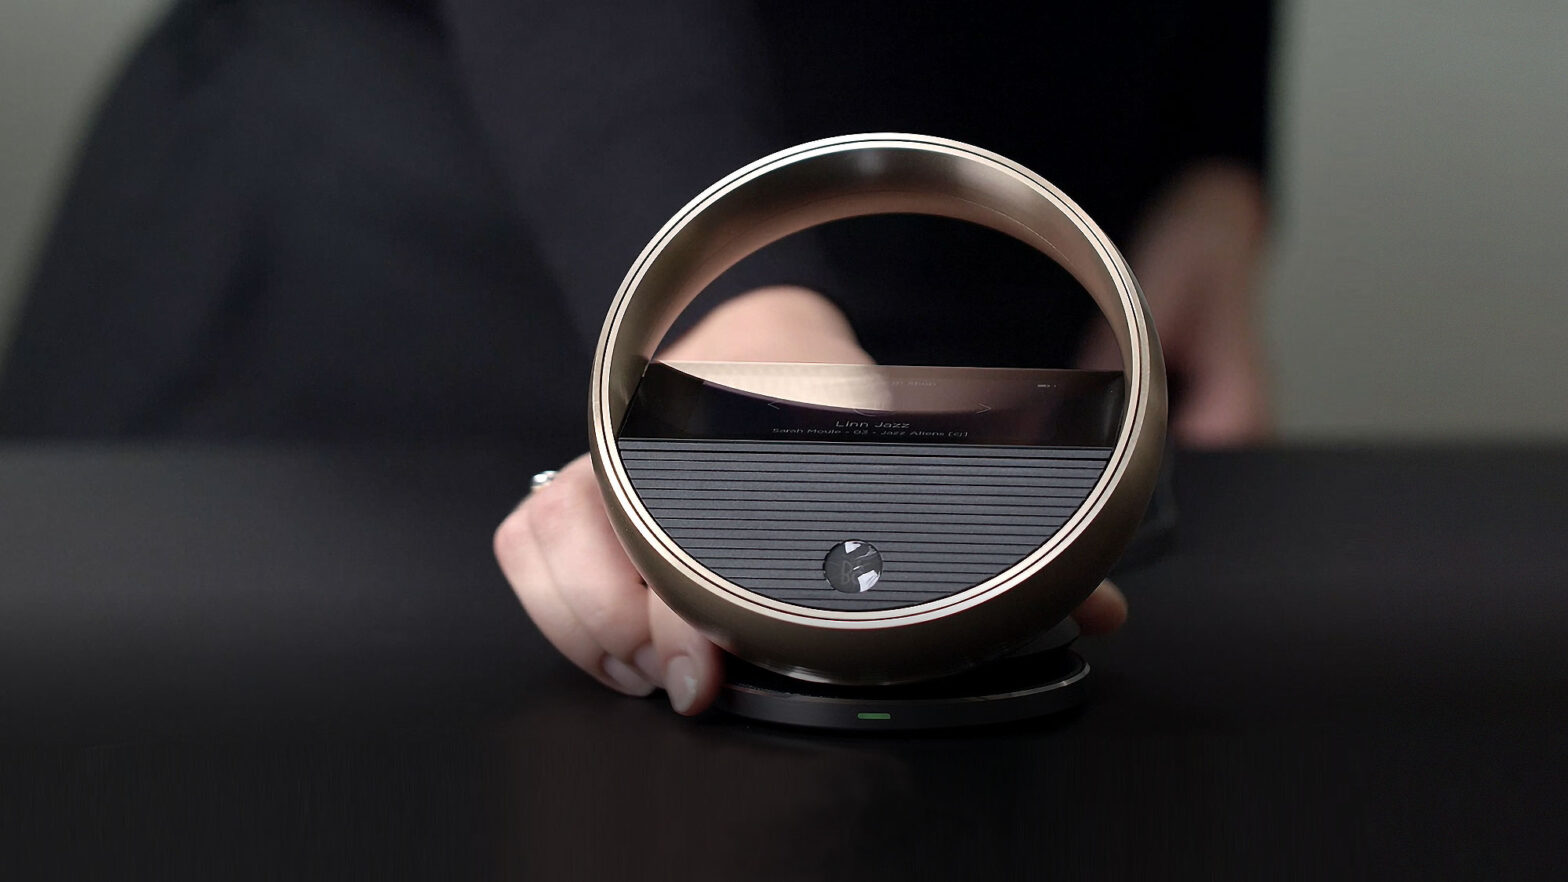 Bang & Olufsen Beoremote Halo Remote Control